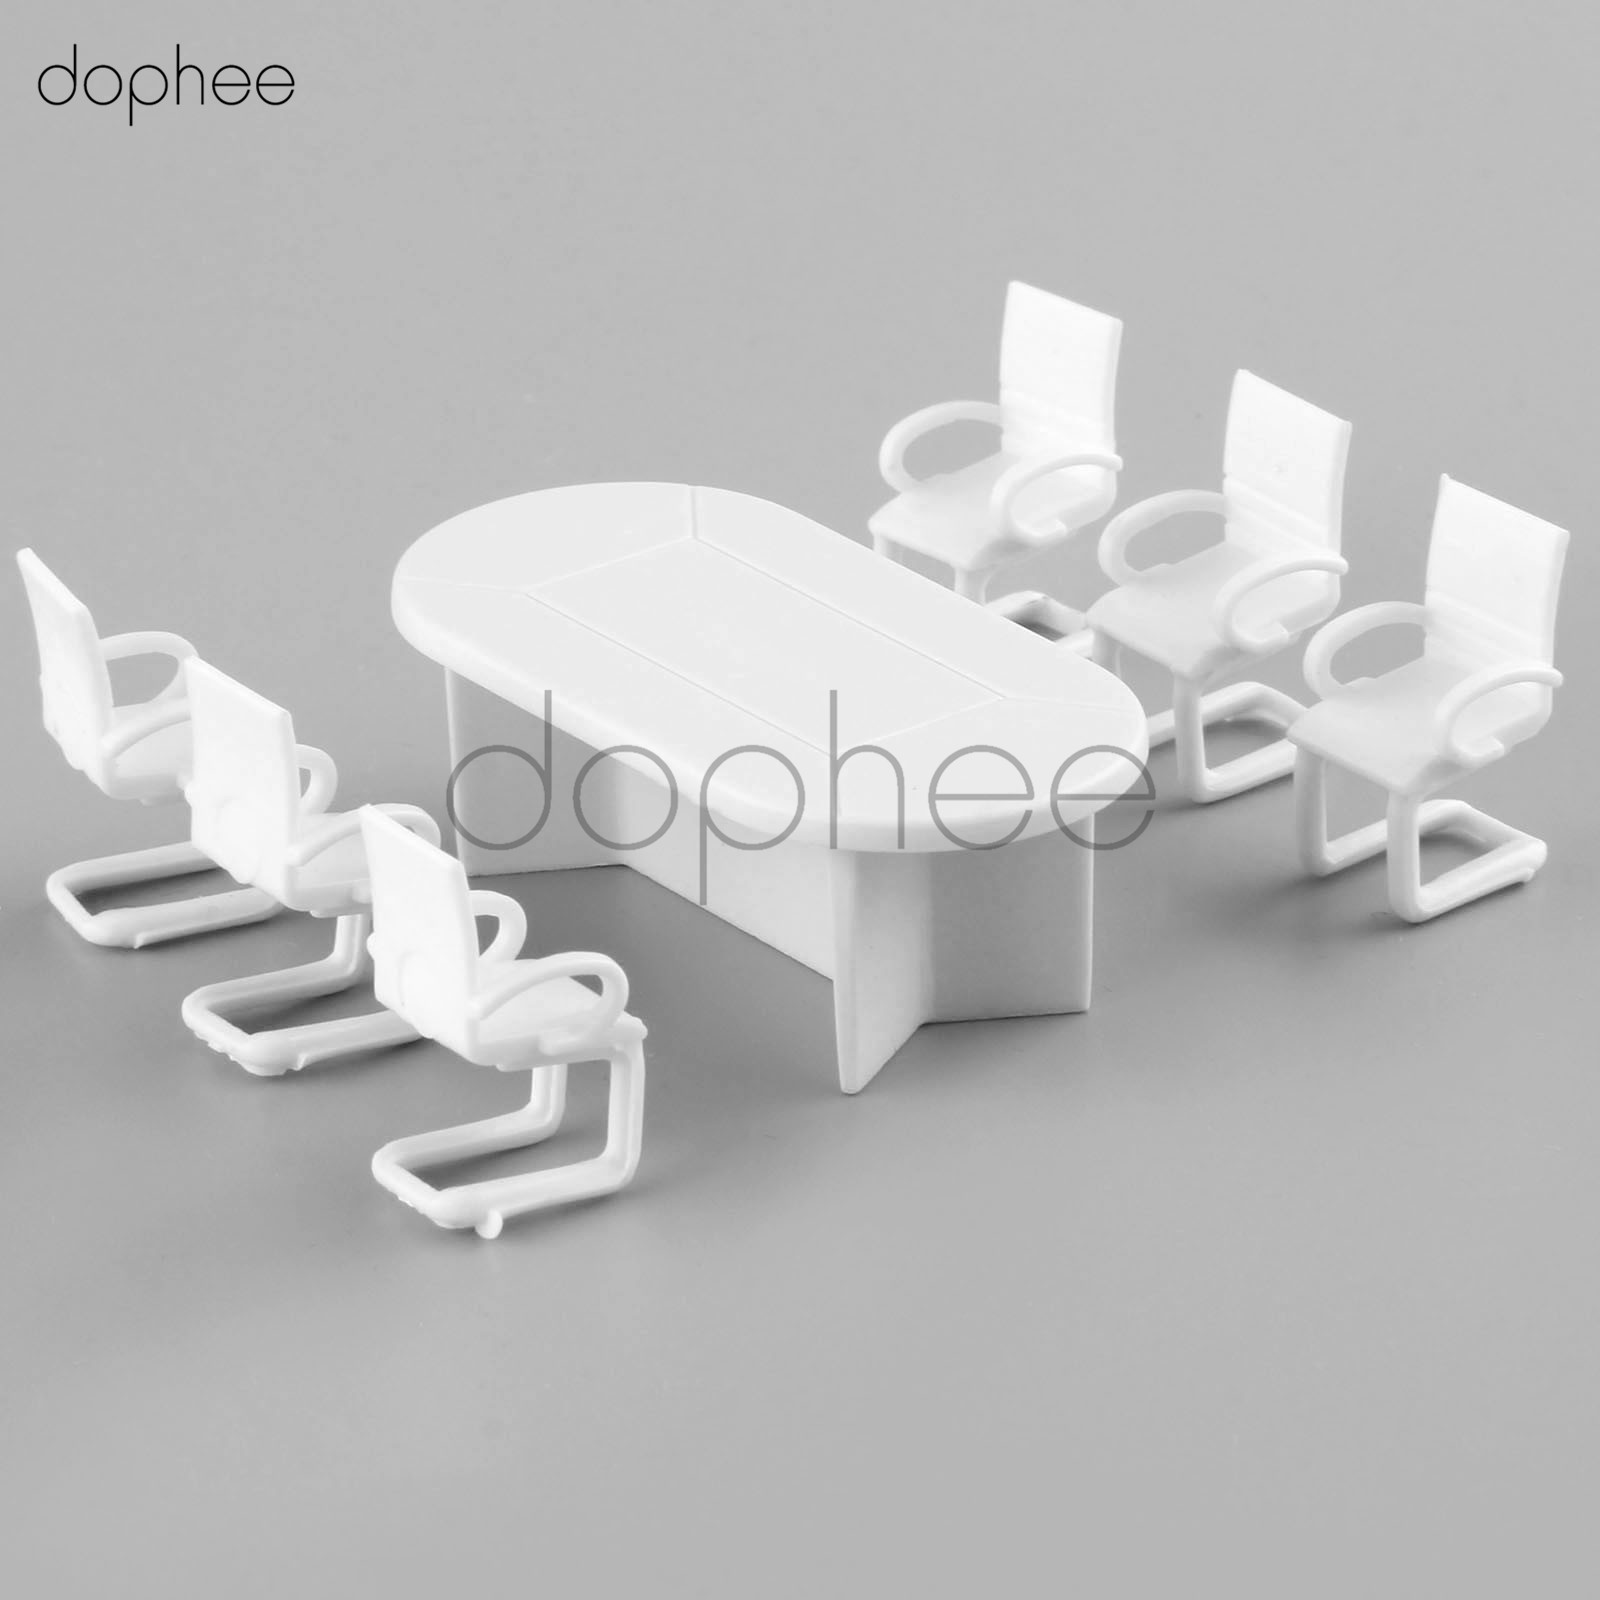 dophee 1sets White Plastic Dining Table Chair Model 1:50 Barbie Dollhouse Furniture